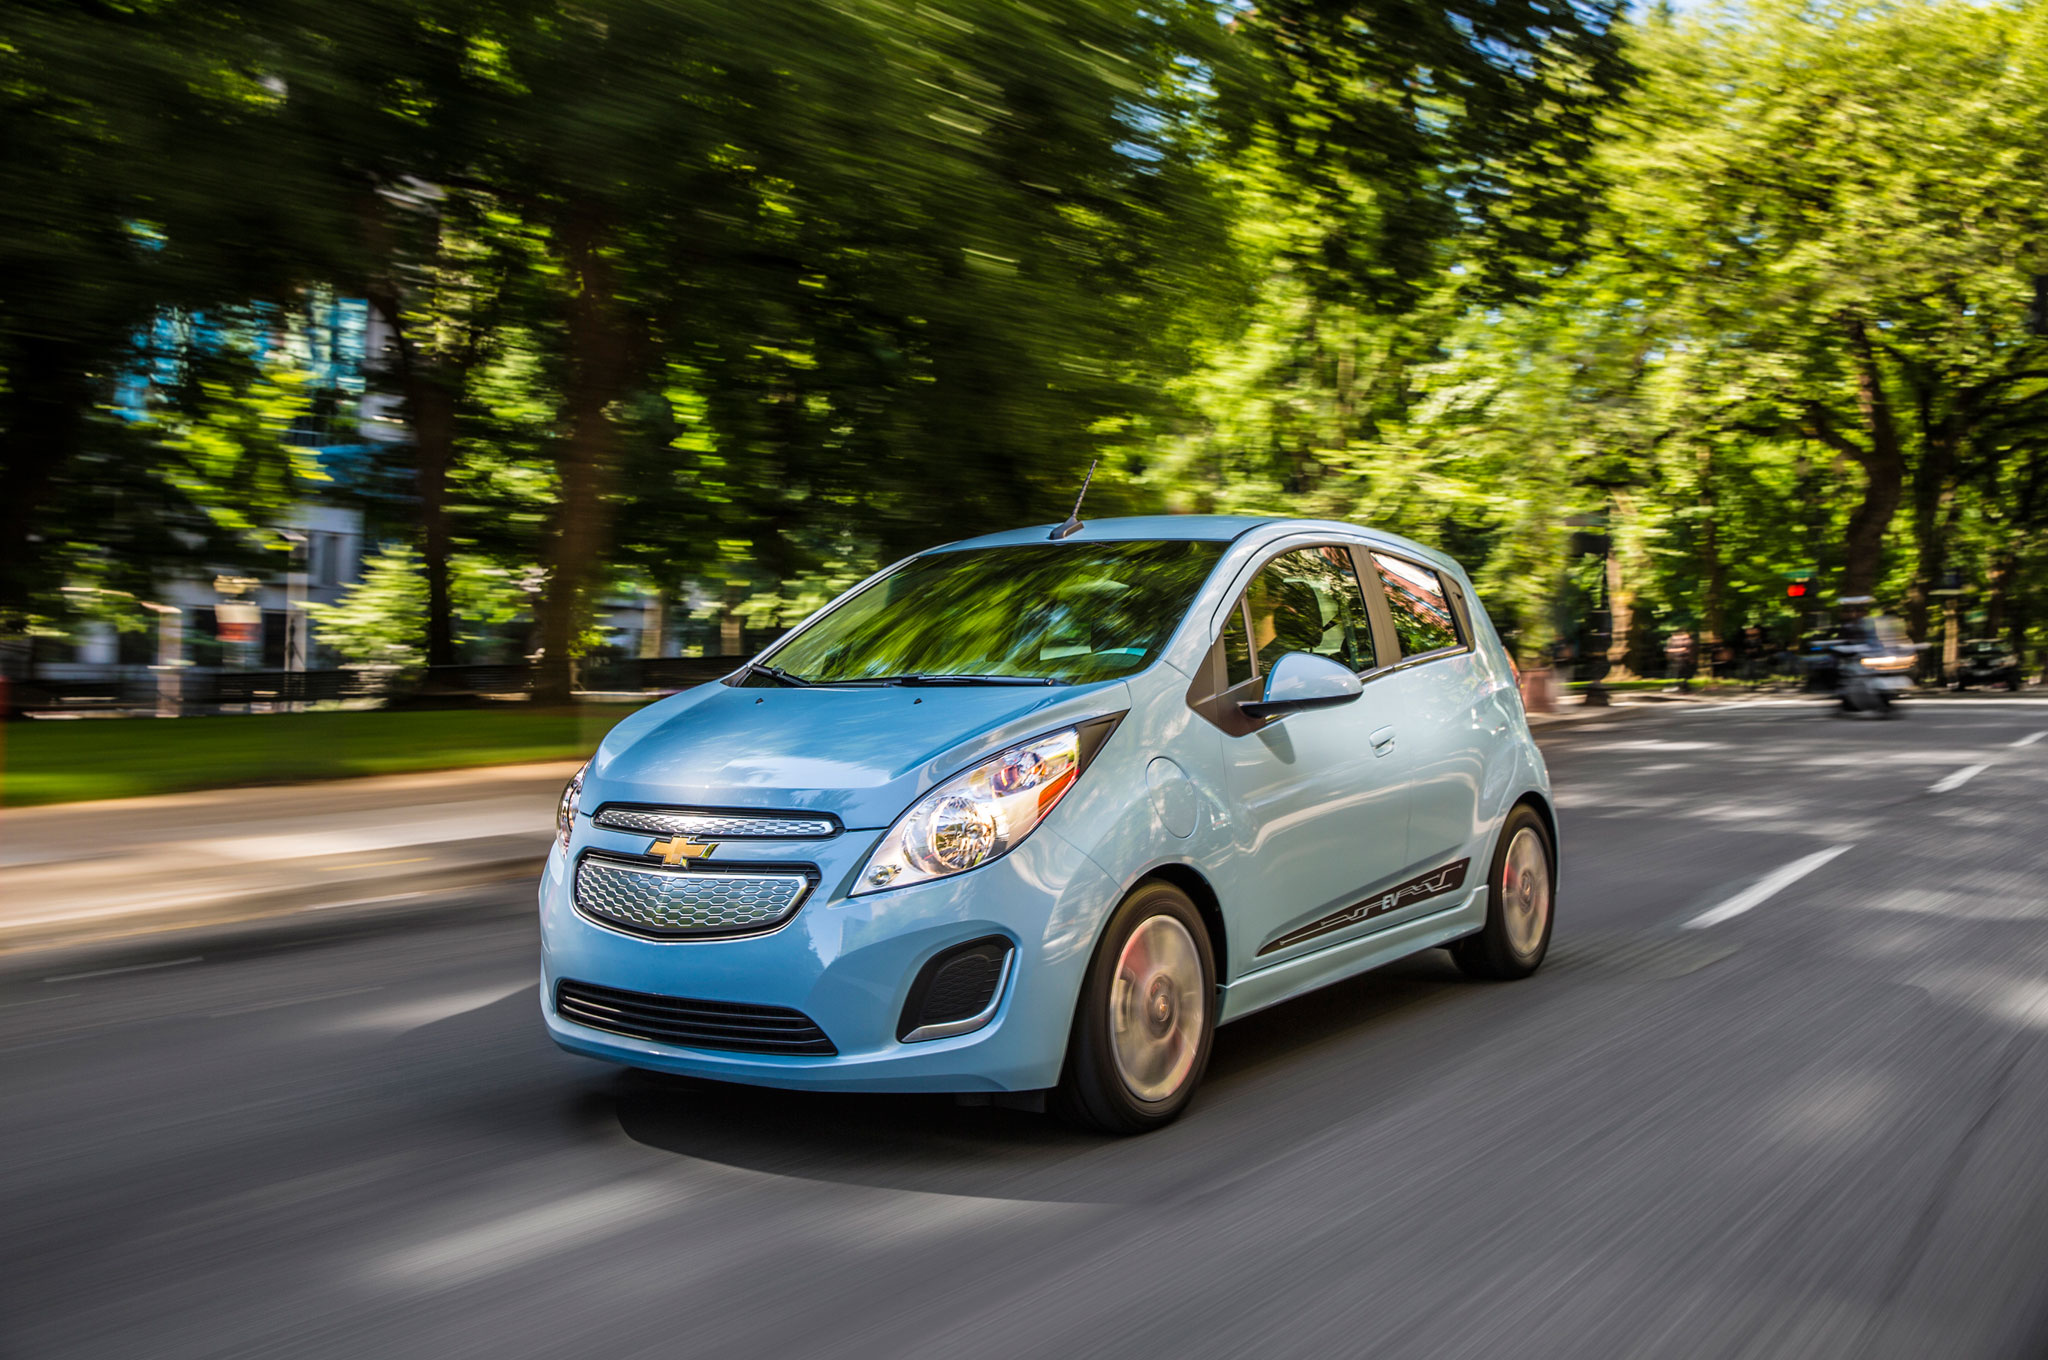 2014 Chevrolet Spark EV Front Left Side View1